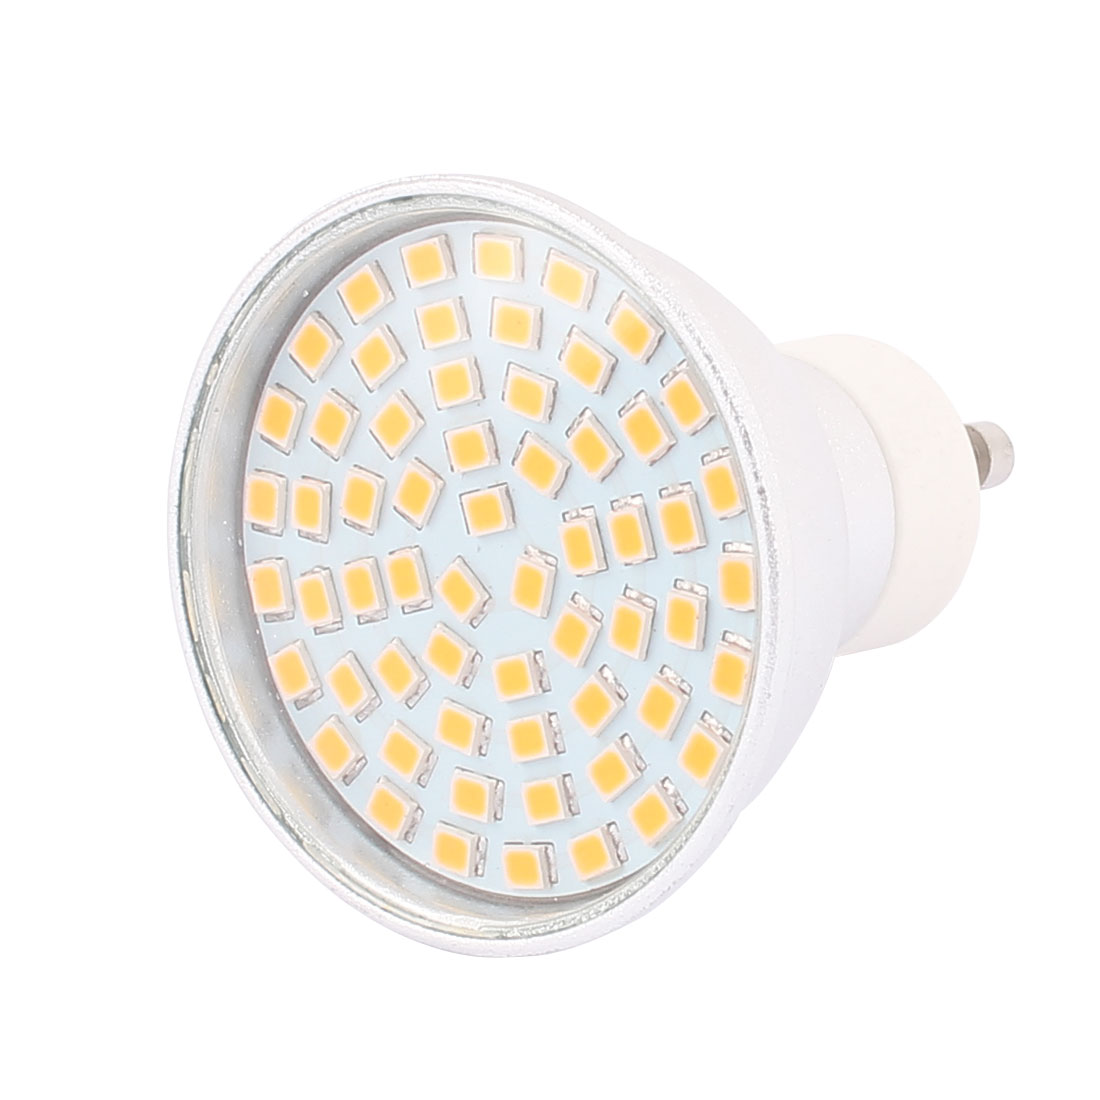 220V-240V GU10 LED Light 6W 2835 SMD 60 LEDs Spotlight Down Lamp Energy Saving Warm White